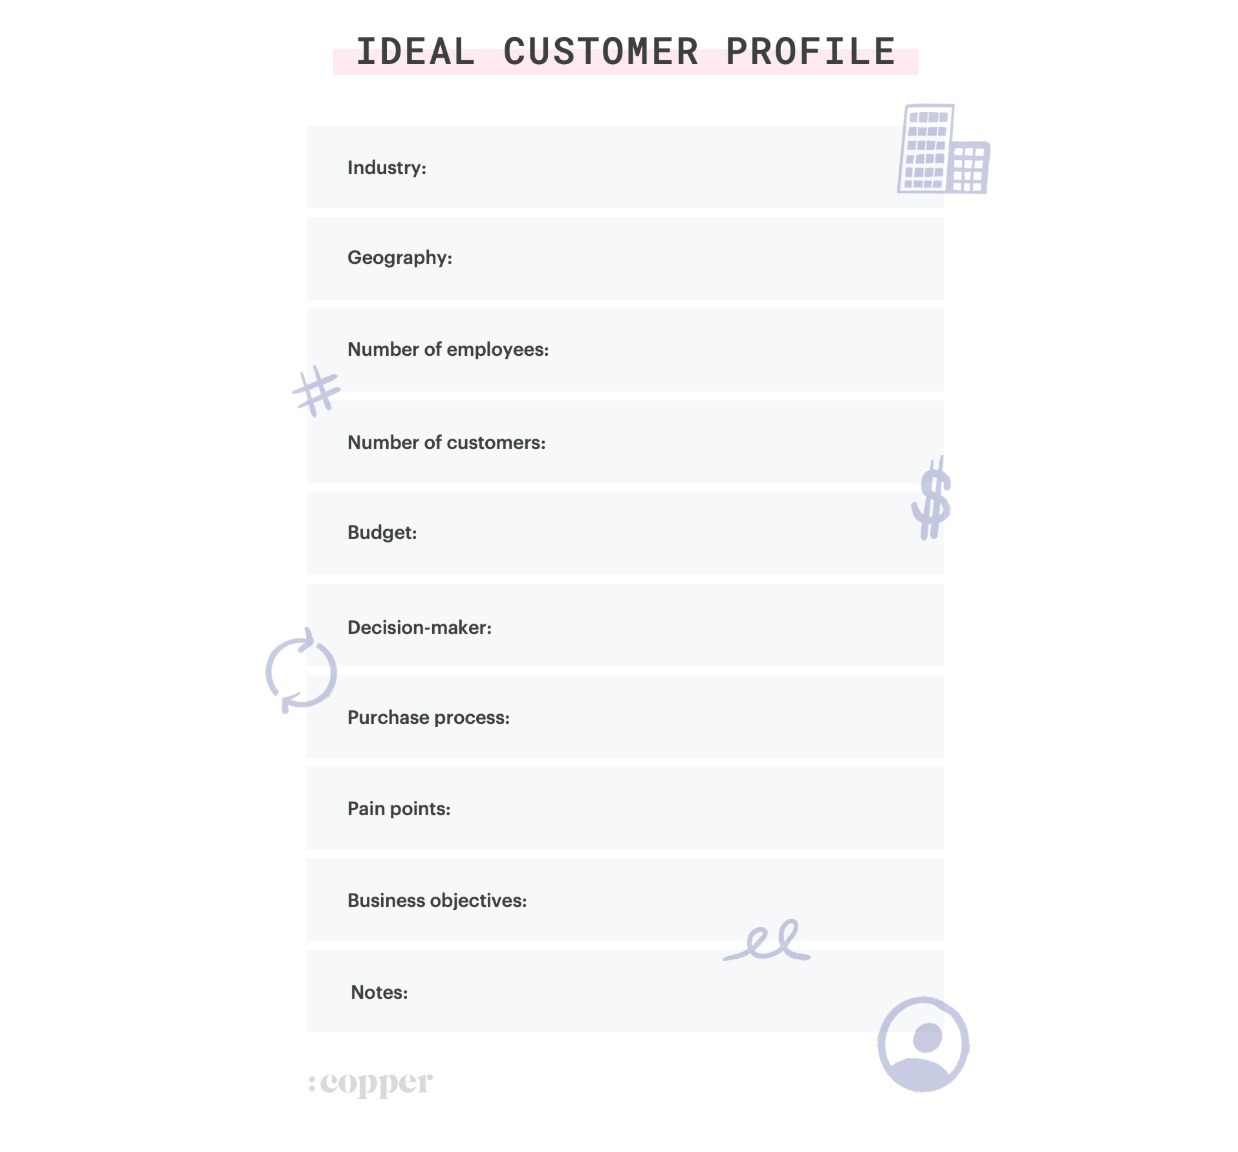 Ideal Customer Profile Template